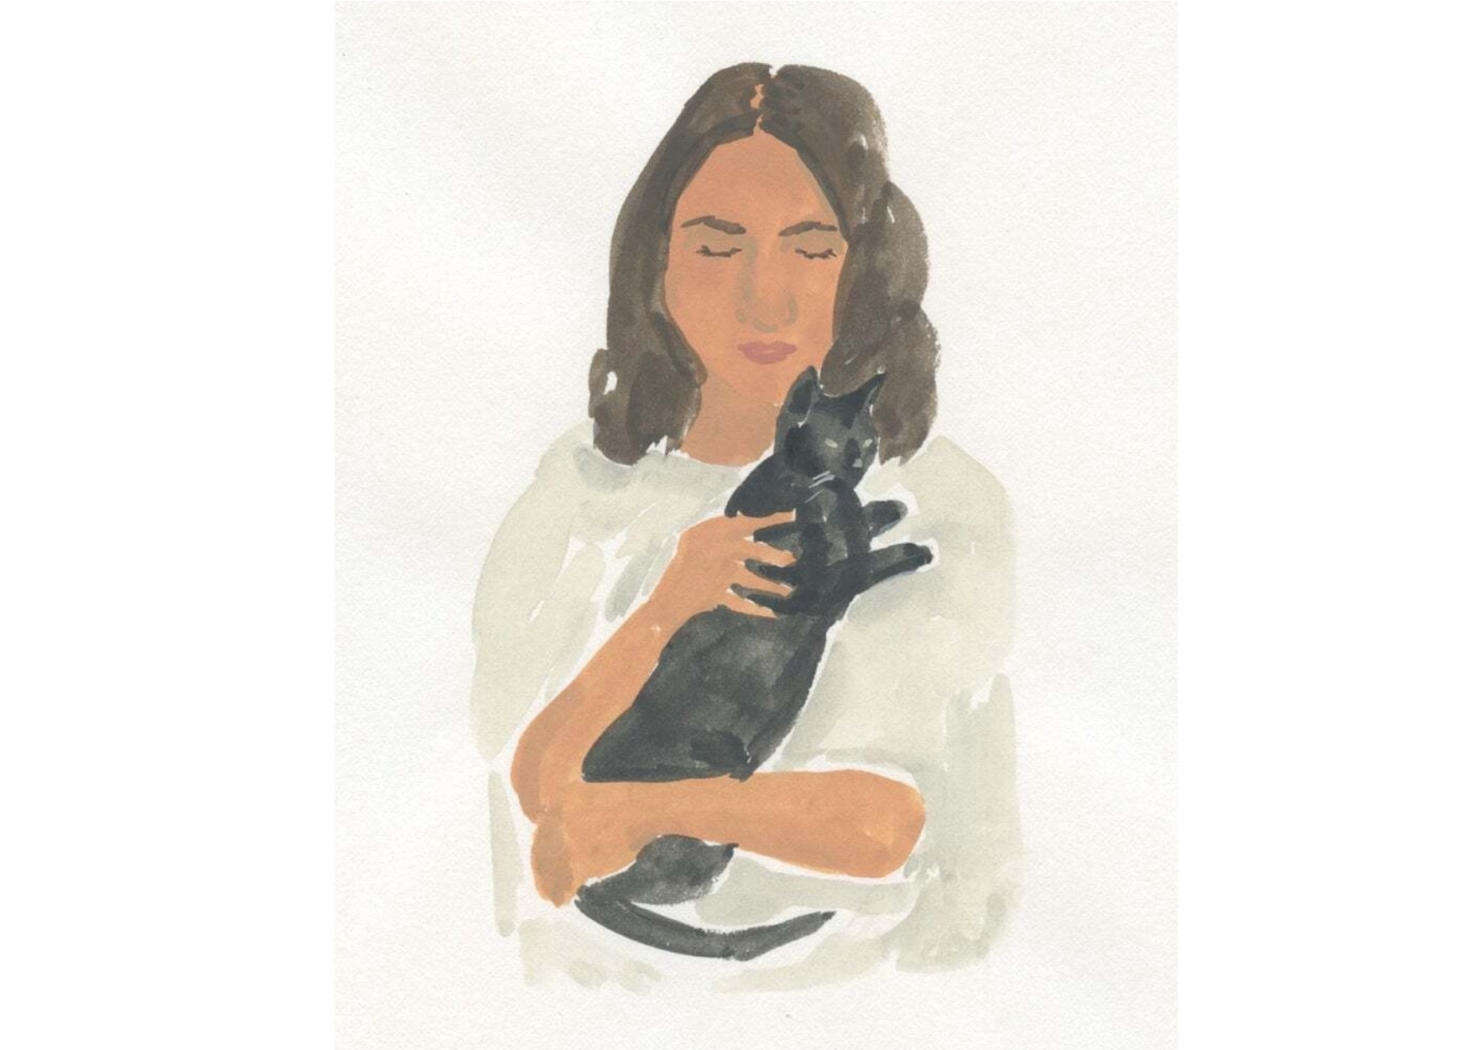 In April, cat lover and artist Leah Goren published the book Catlady: A Love Letter to Women and Their Cats. She&#8